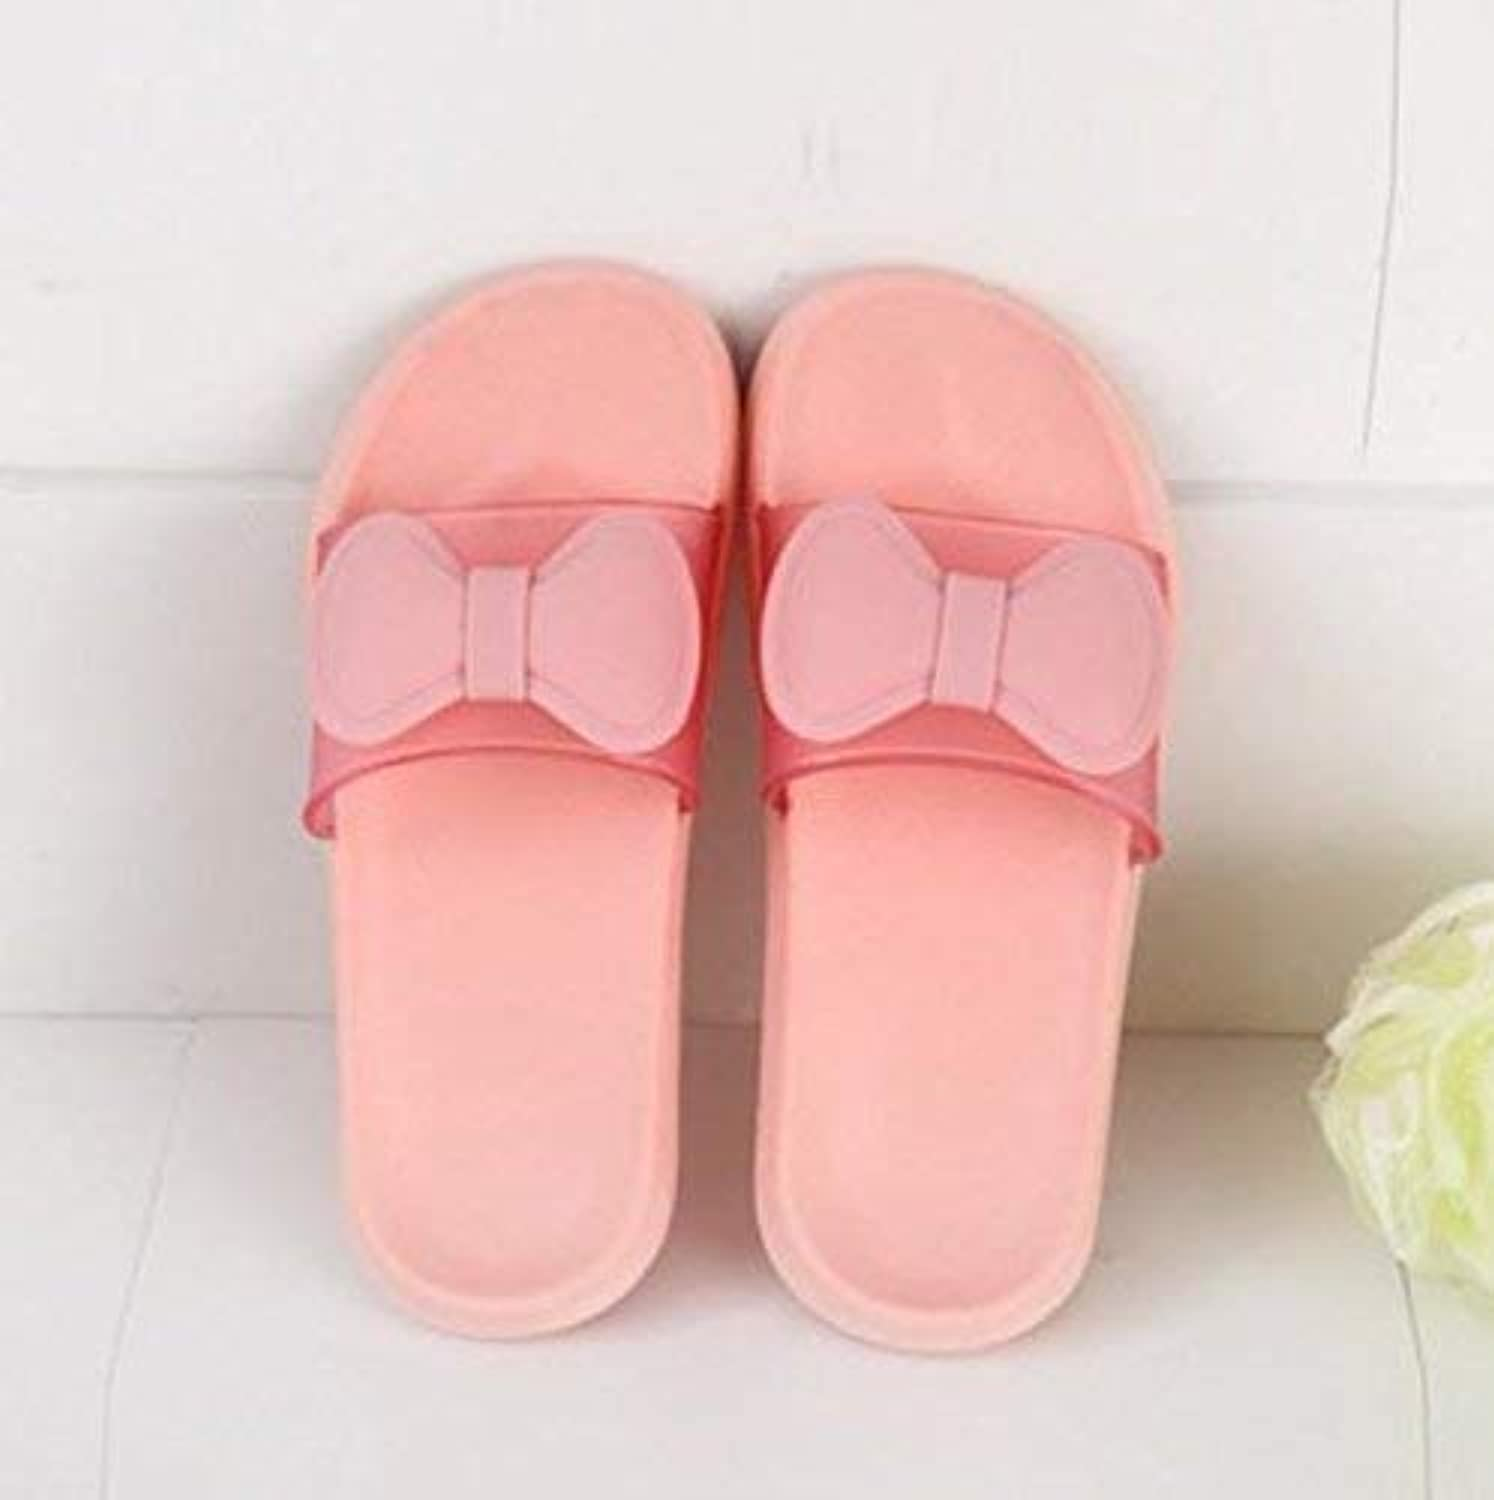 Lady Slippers Home Indoor Slippers Ladies Slip Bath Slippers Pink bluee Green Slipper Soild color Personality Bow Quality